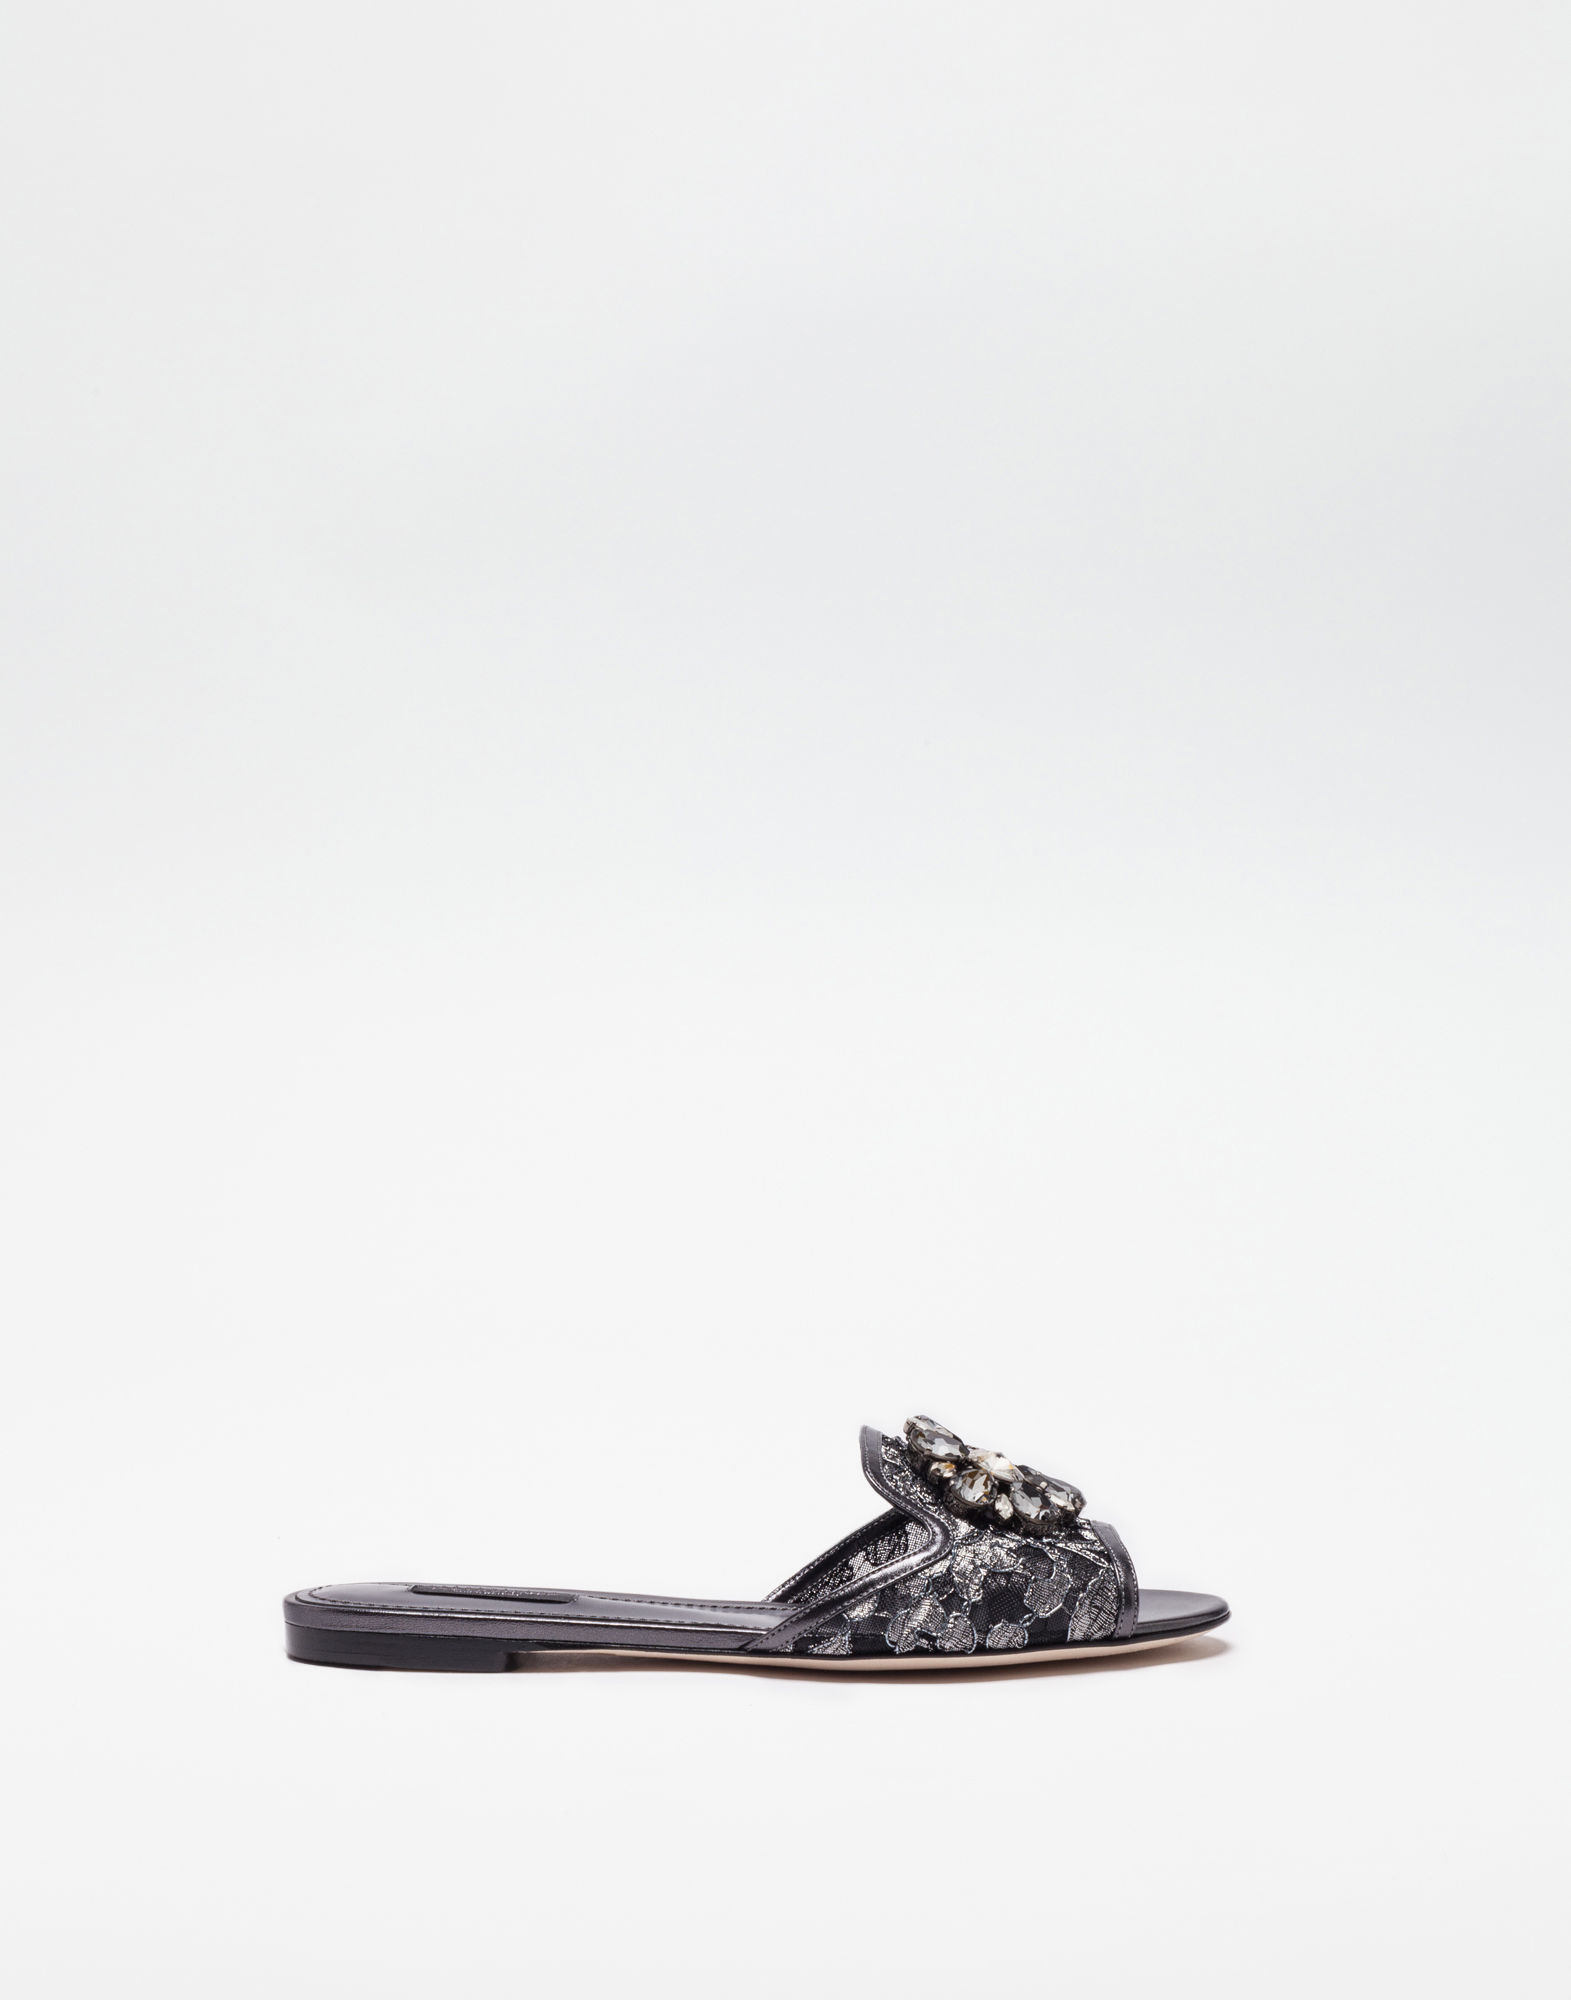 Dolce & Gabbana Embellished Corded Lace And Lizard-effect Leather Slides In Black